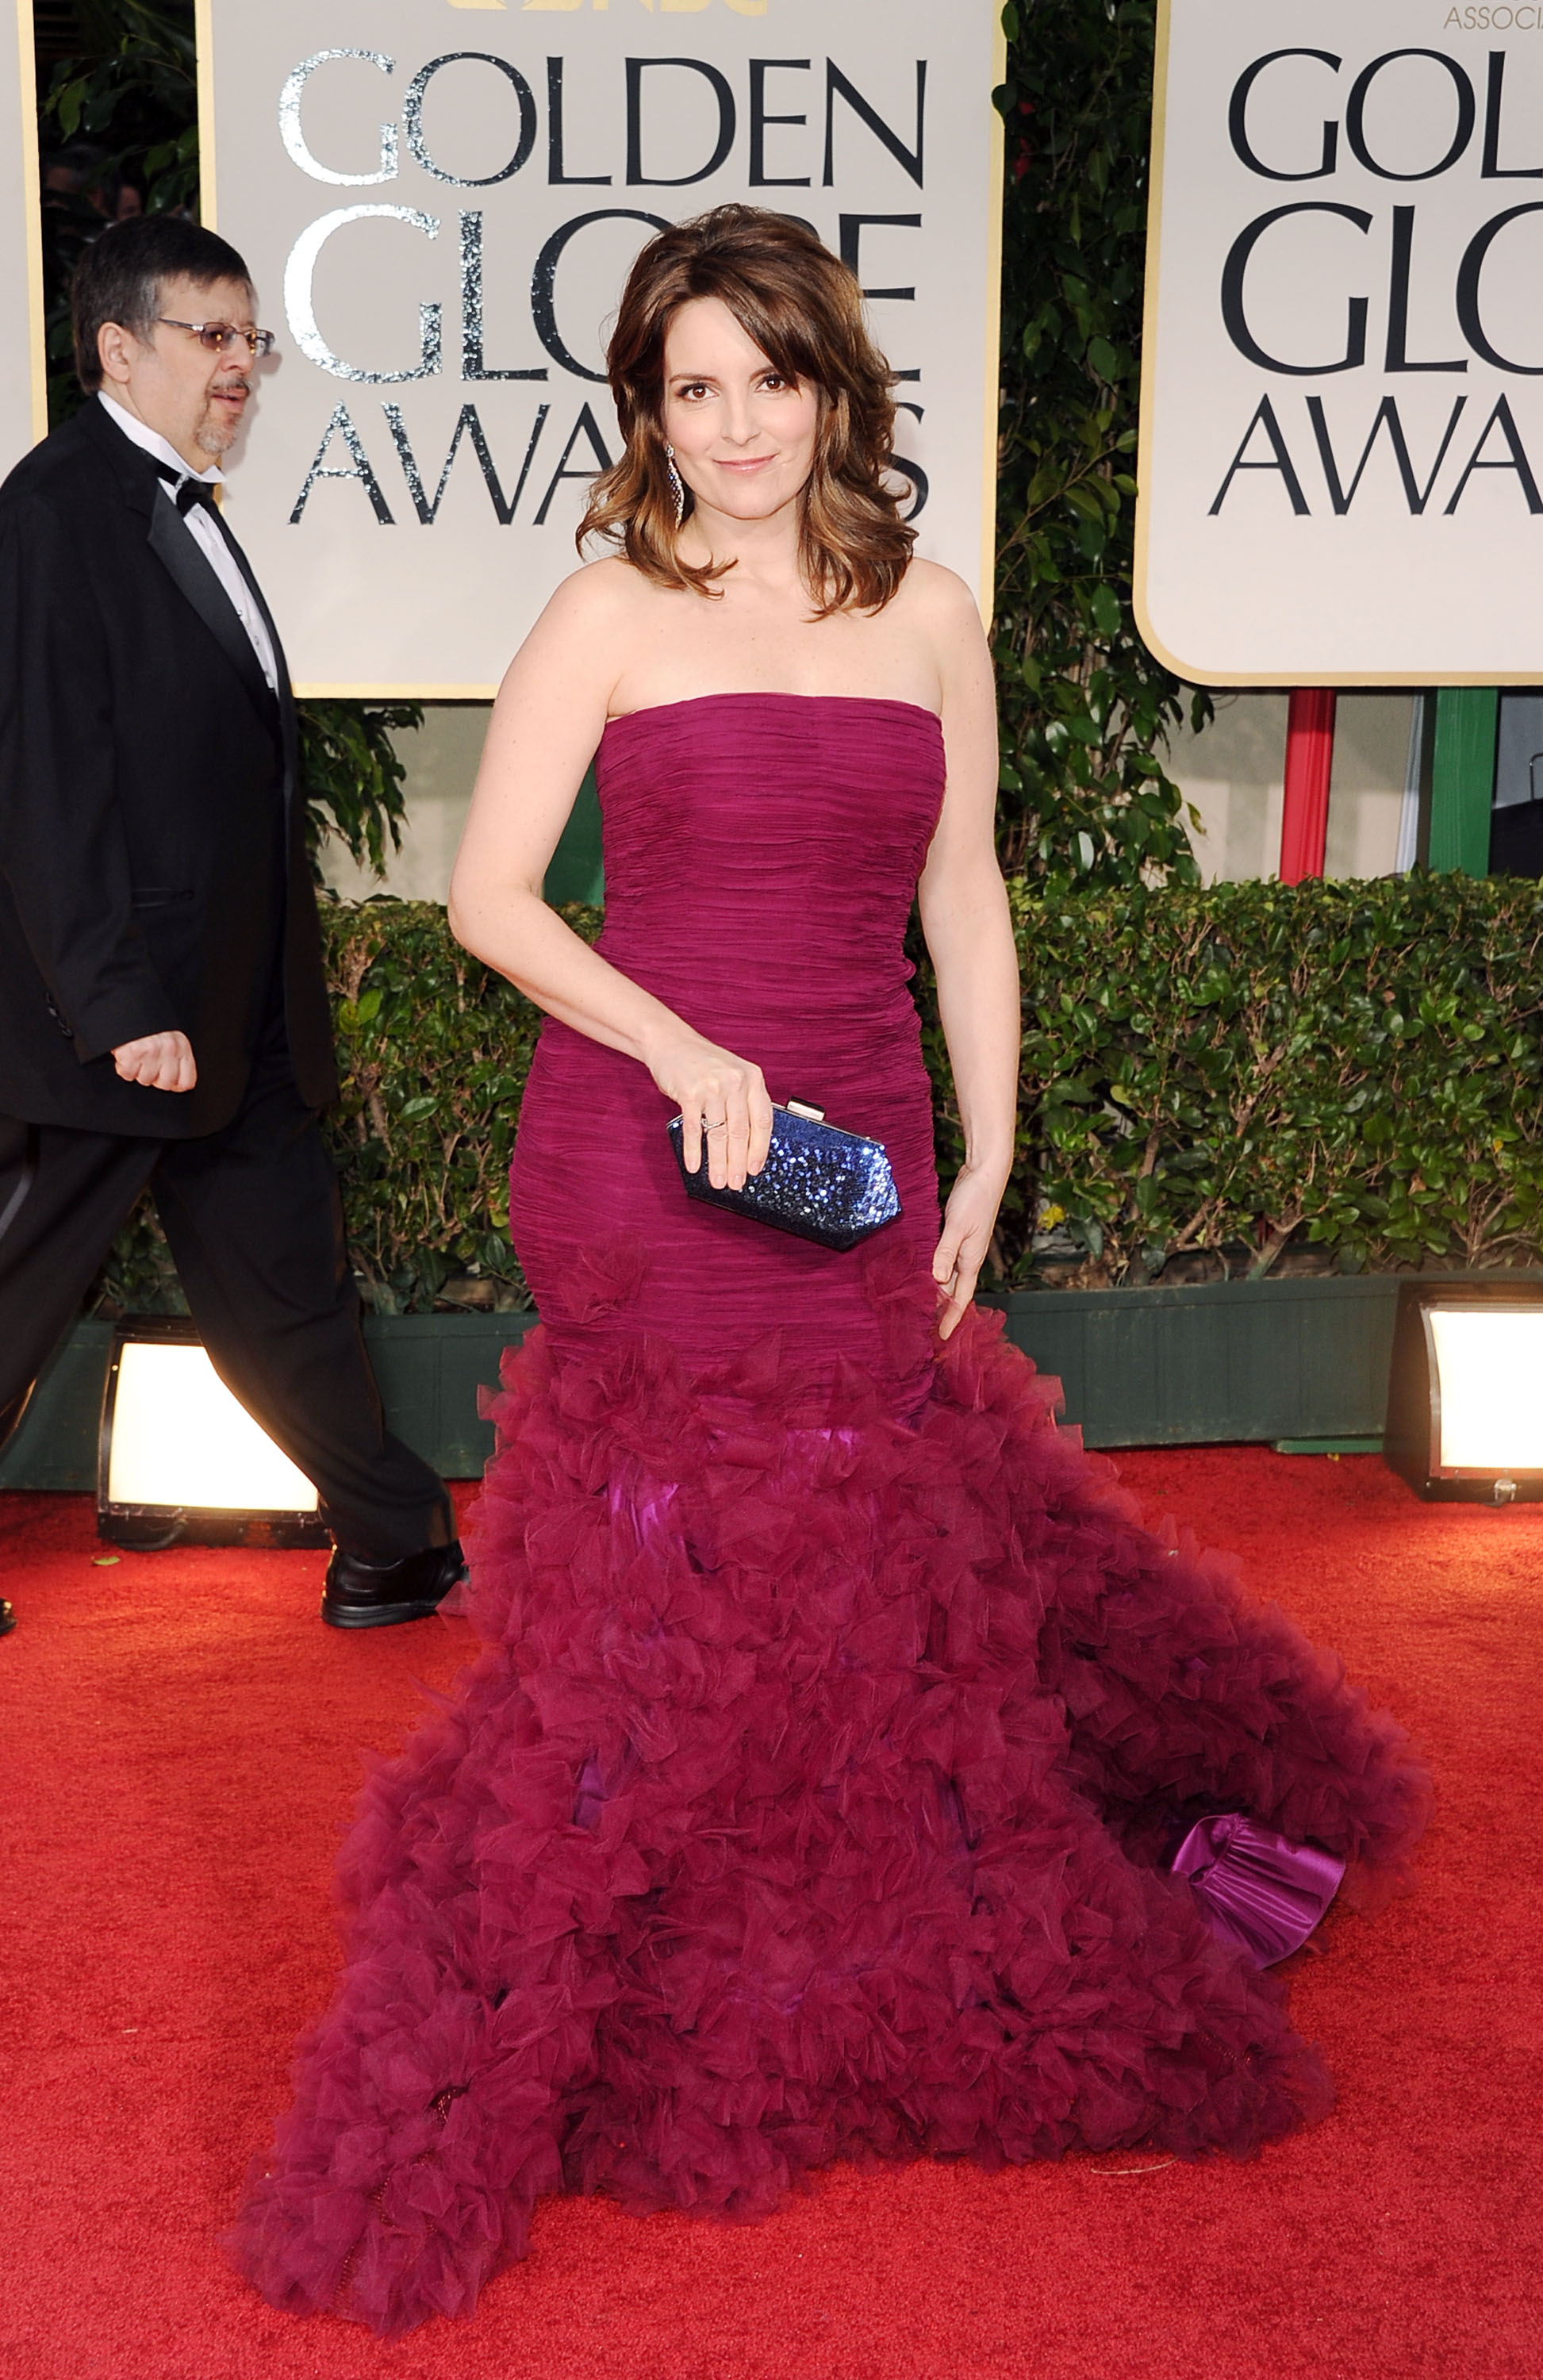 Tina Fey on the Golden Globes red carpet.